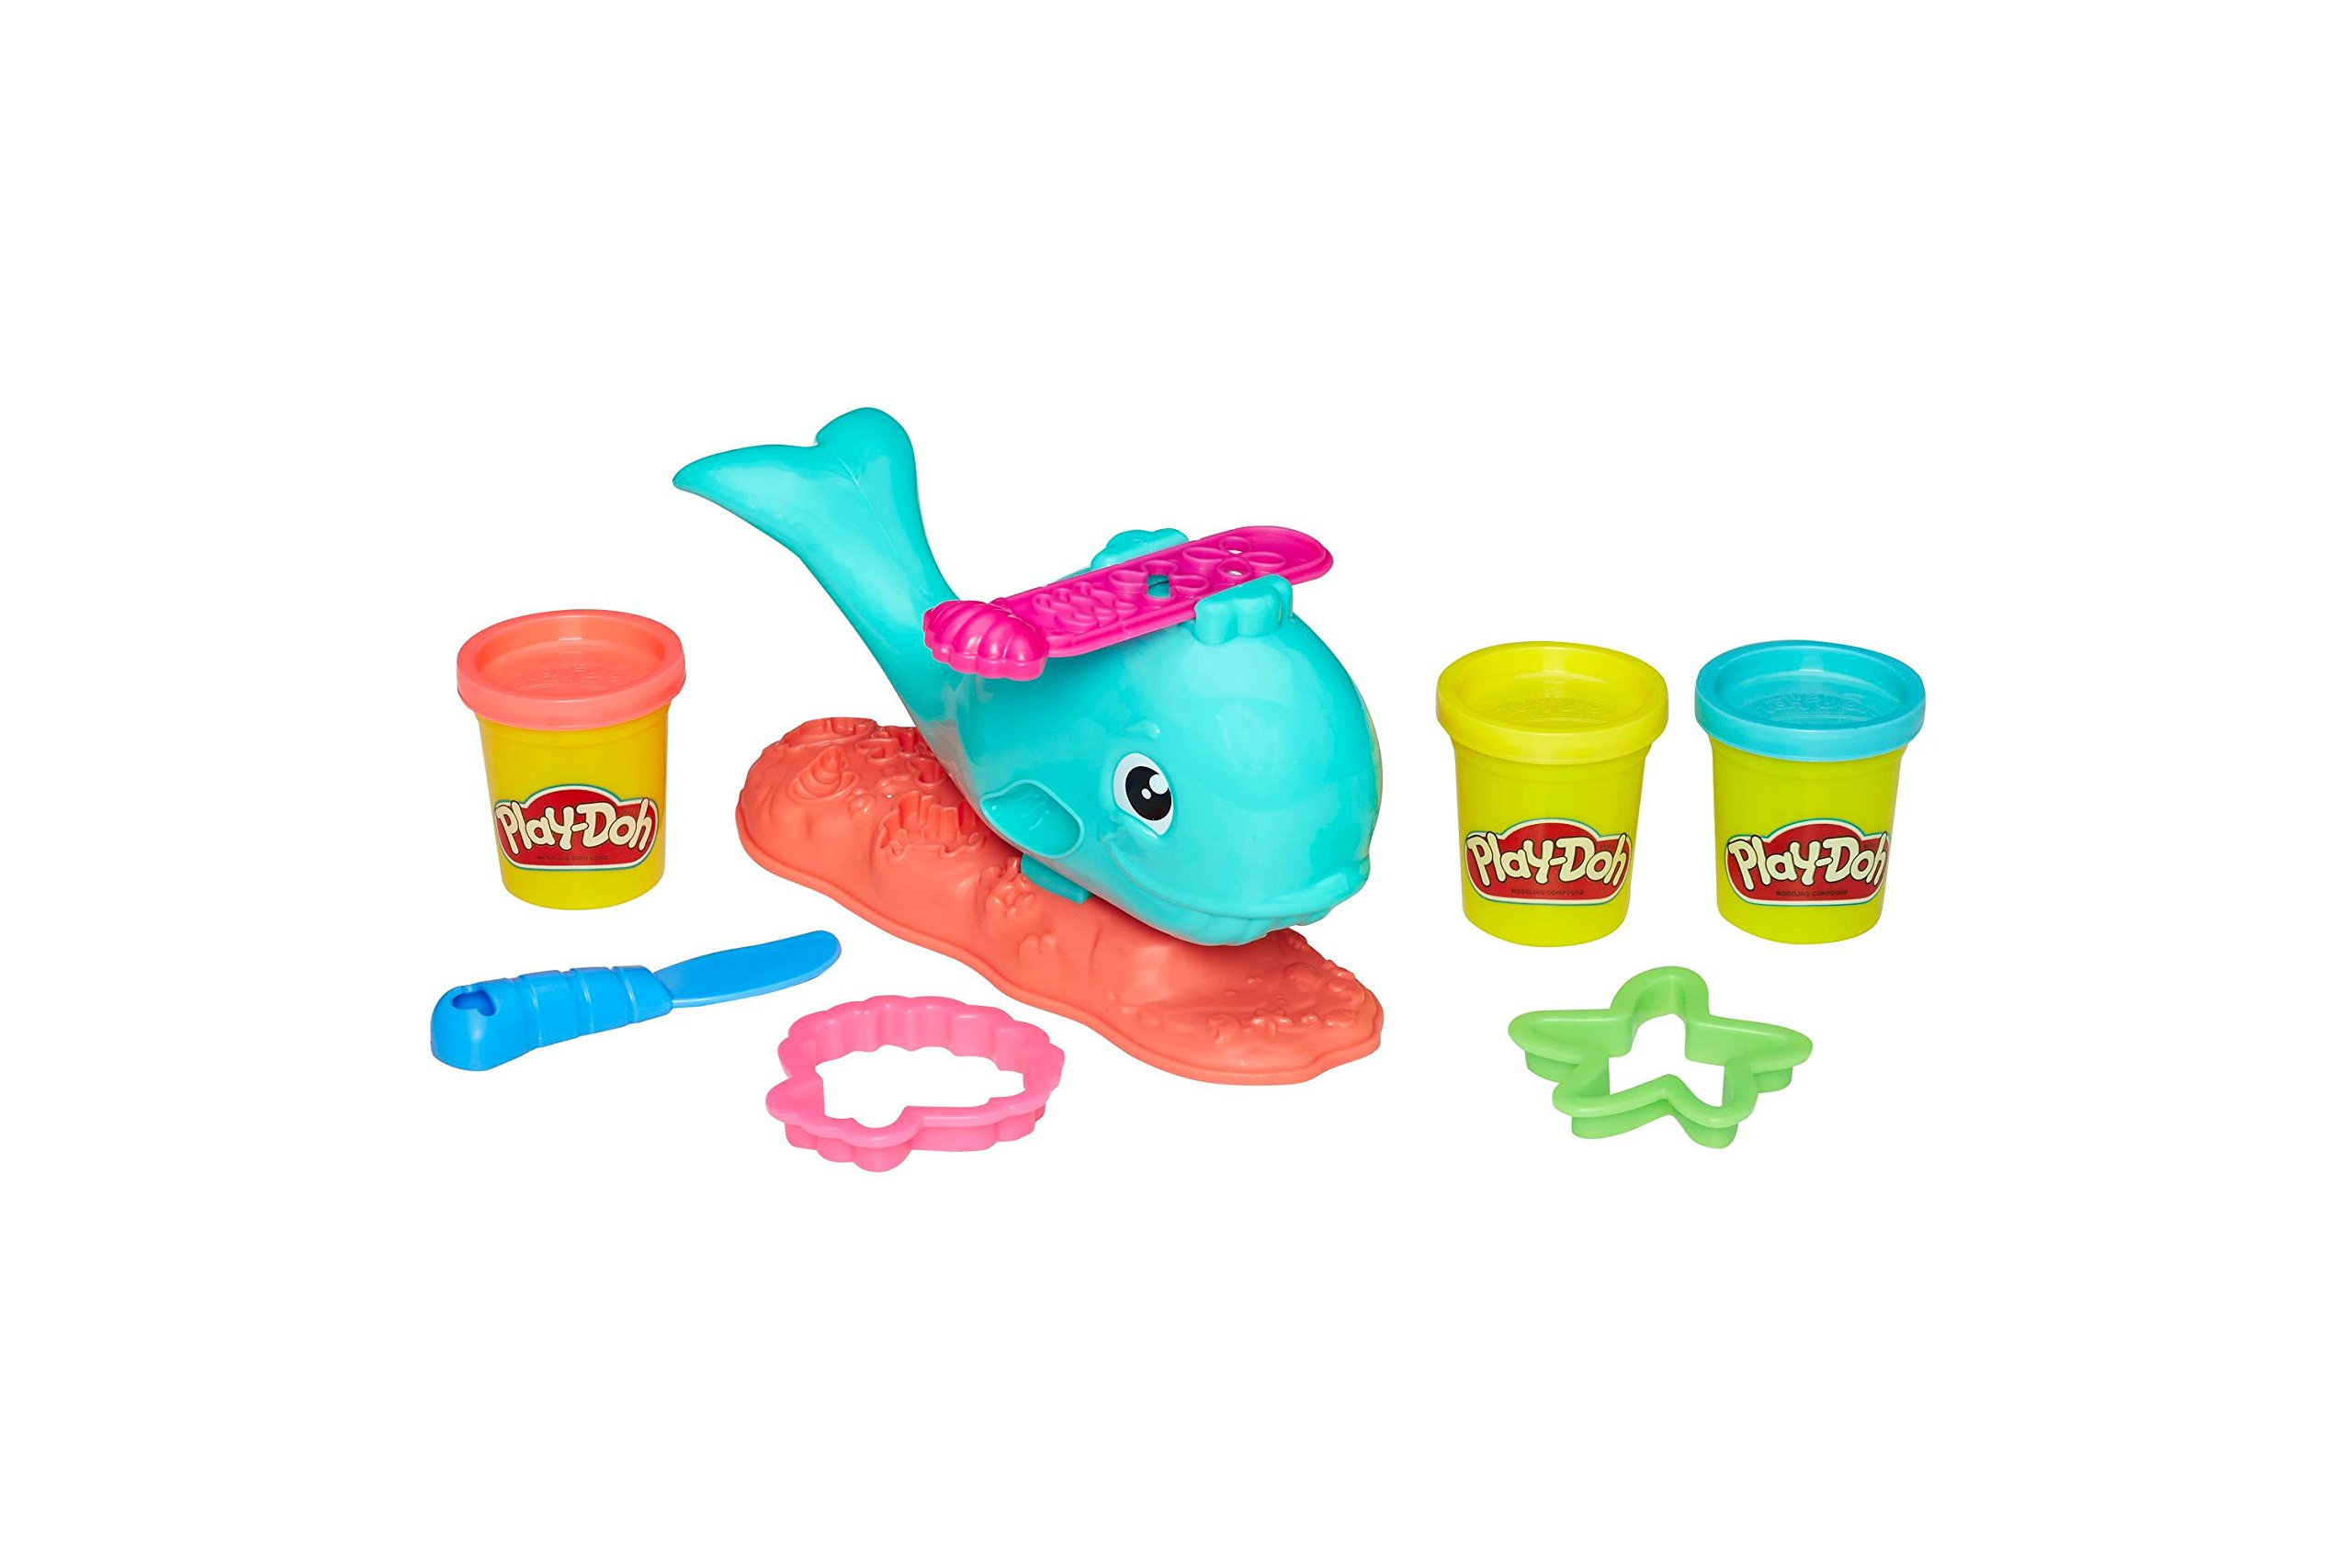 Play-Doh Wavy the Whale + Play-Doh Plus Compound Bundle